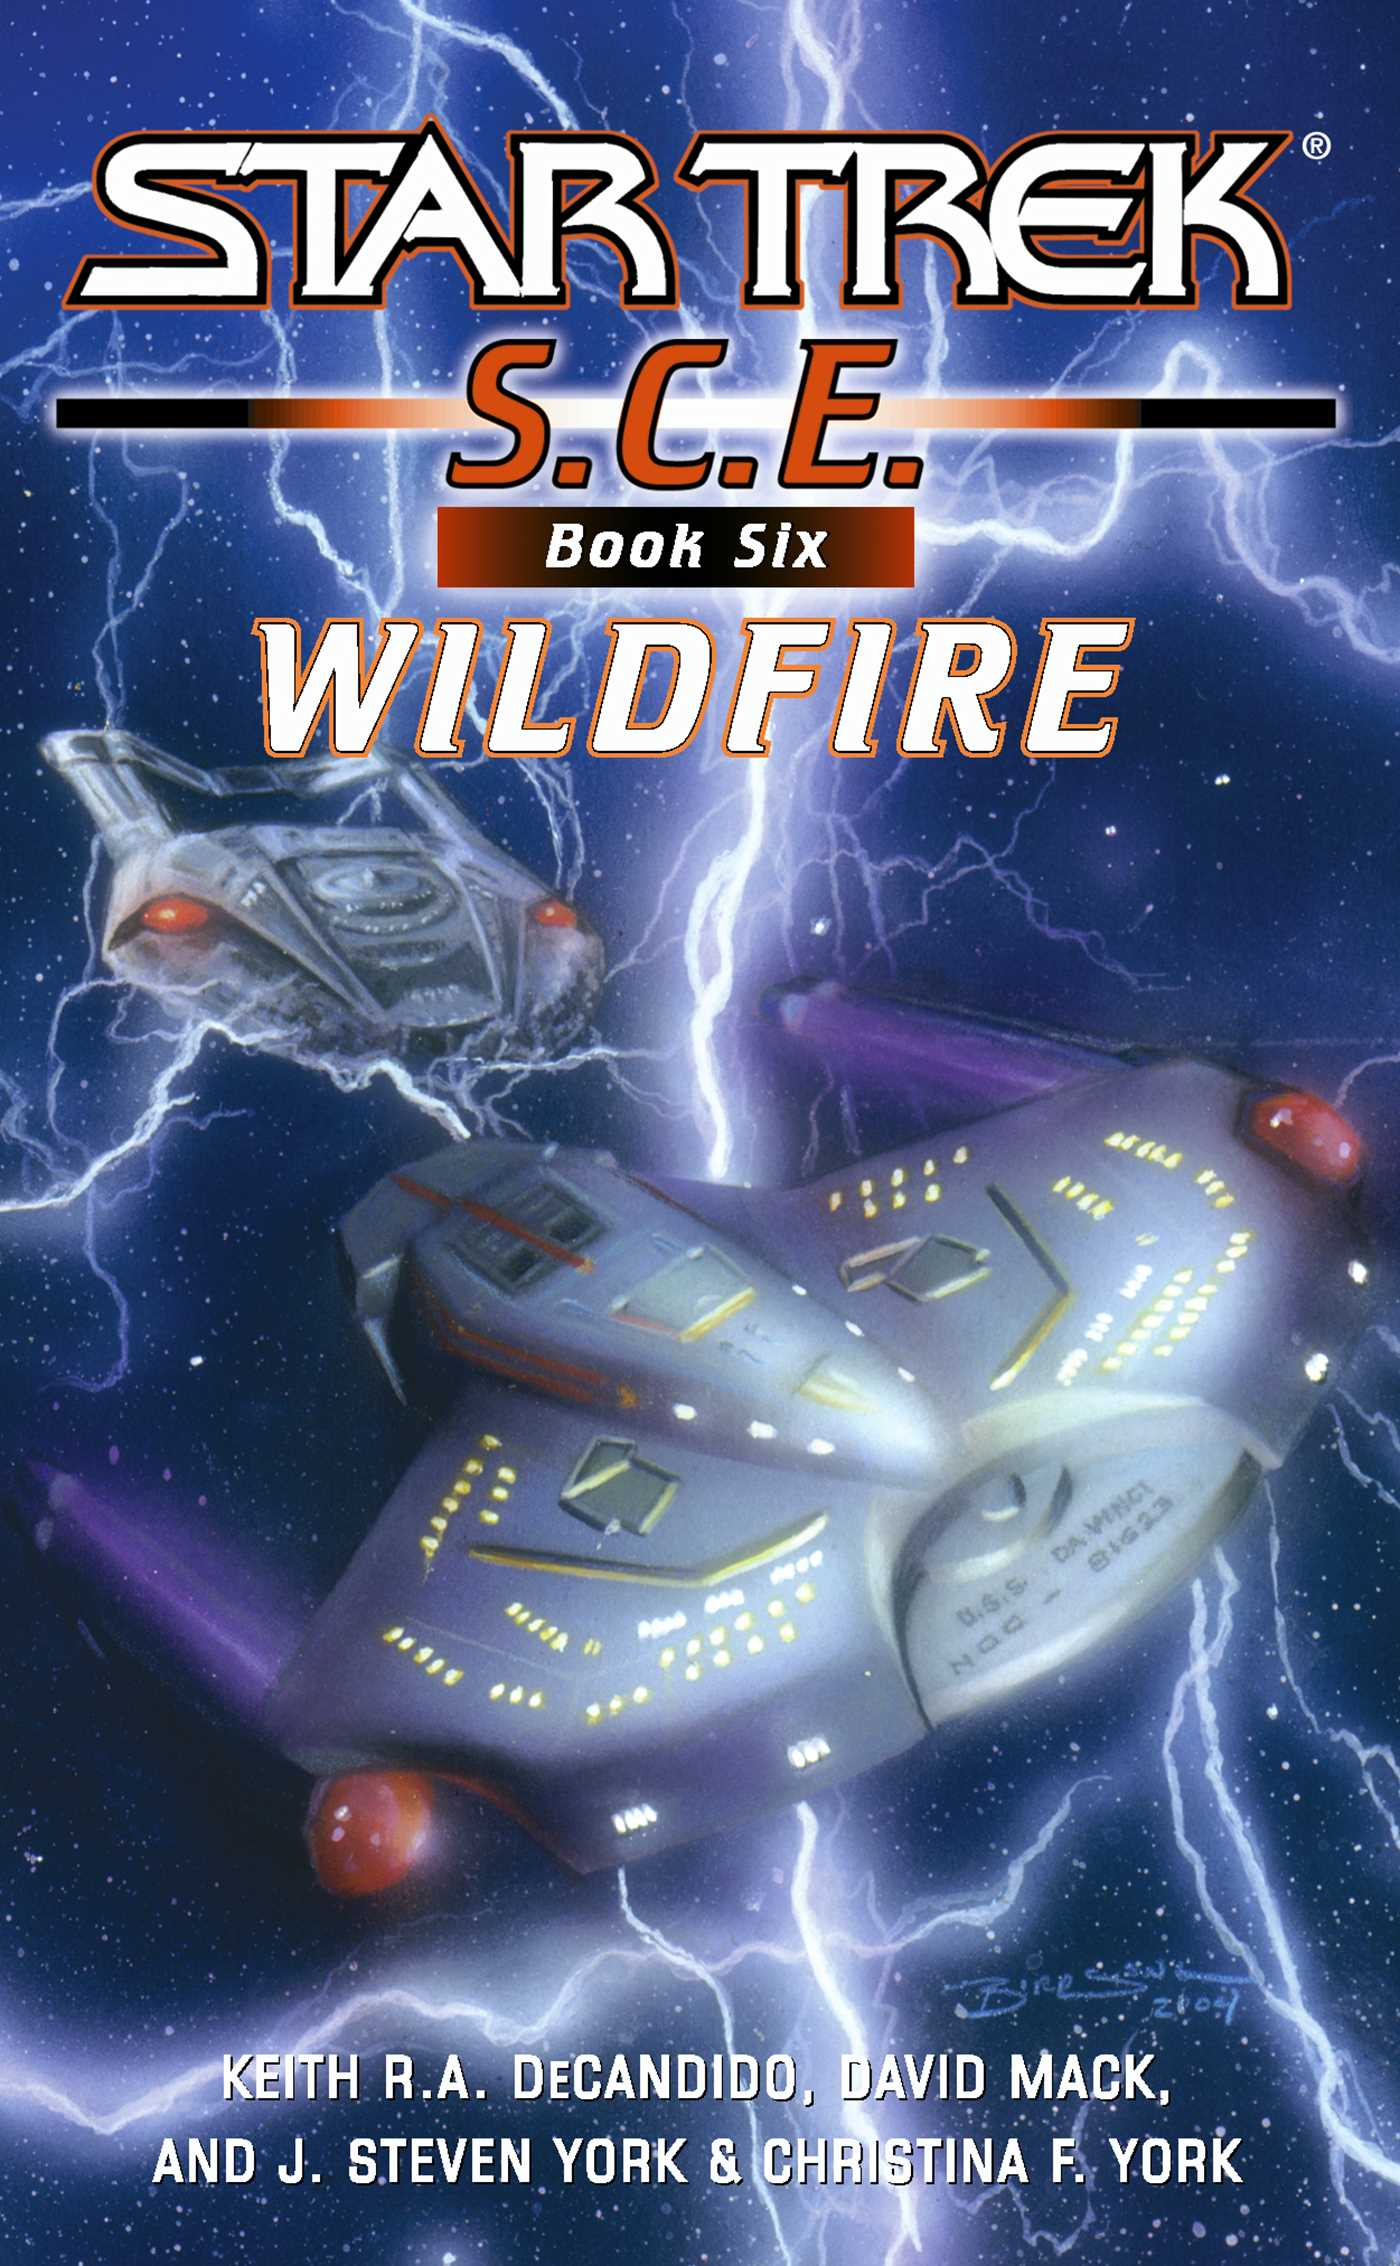 Star trek corps of engineers wildfire 9781416507888 hr